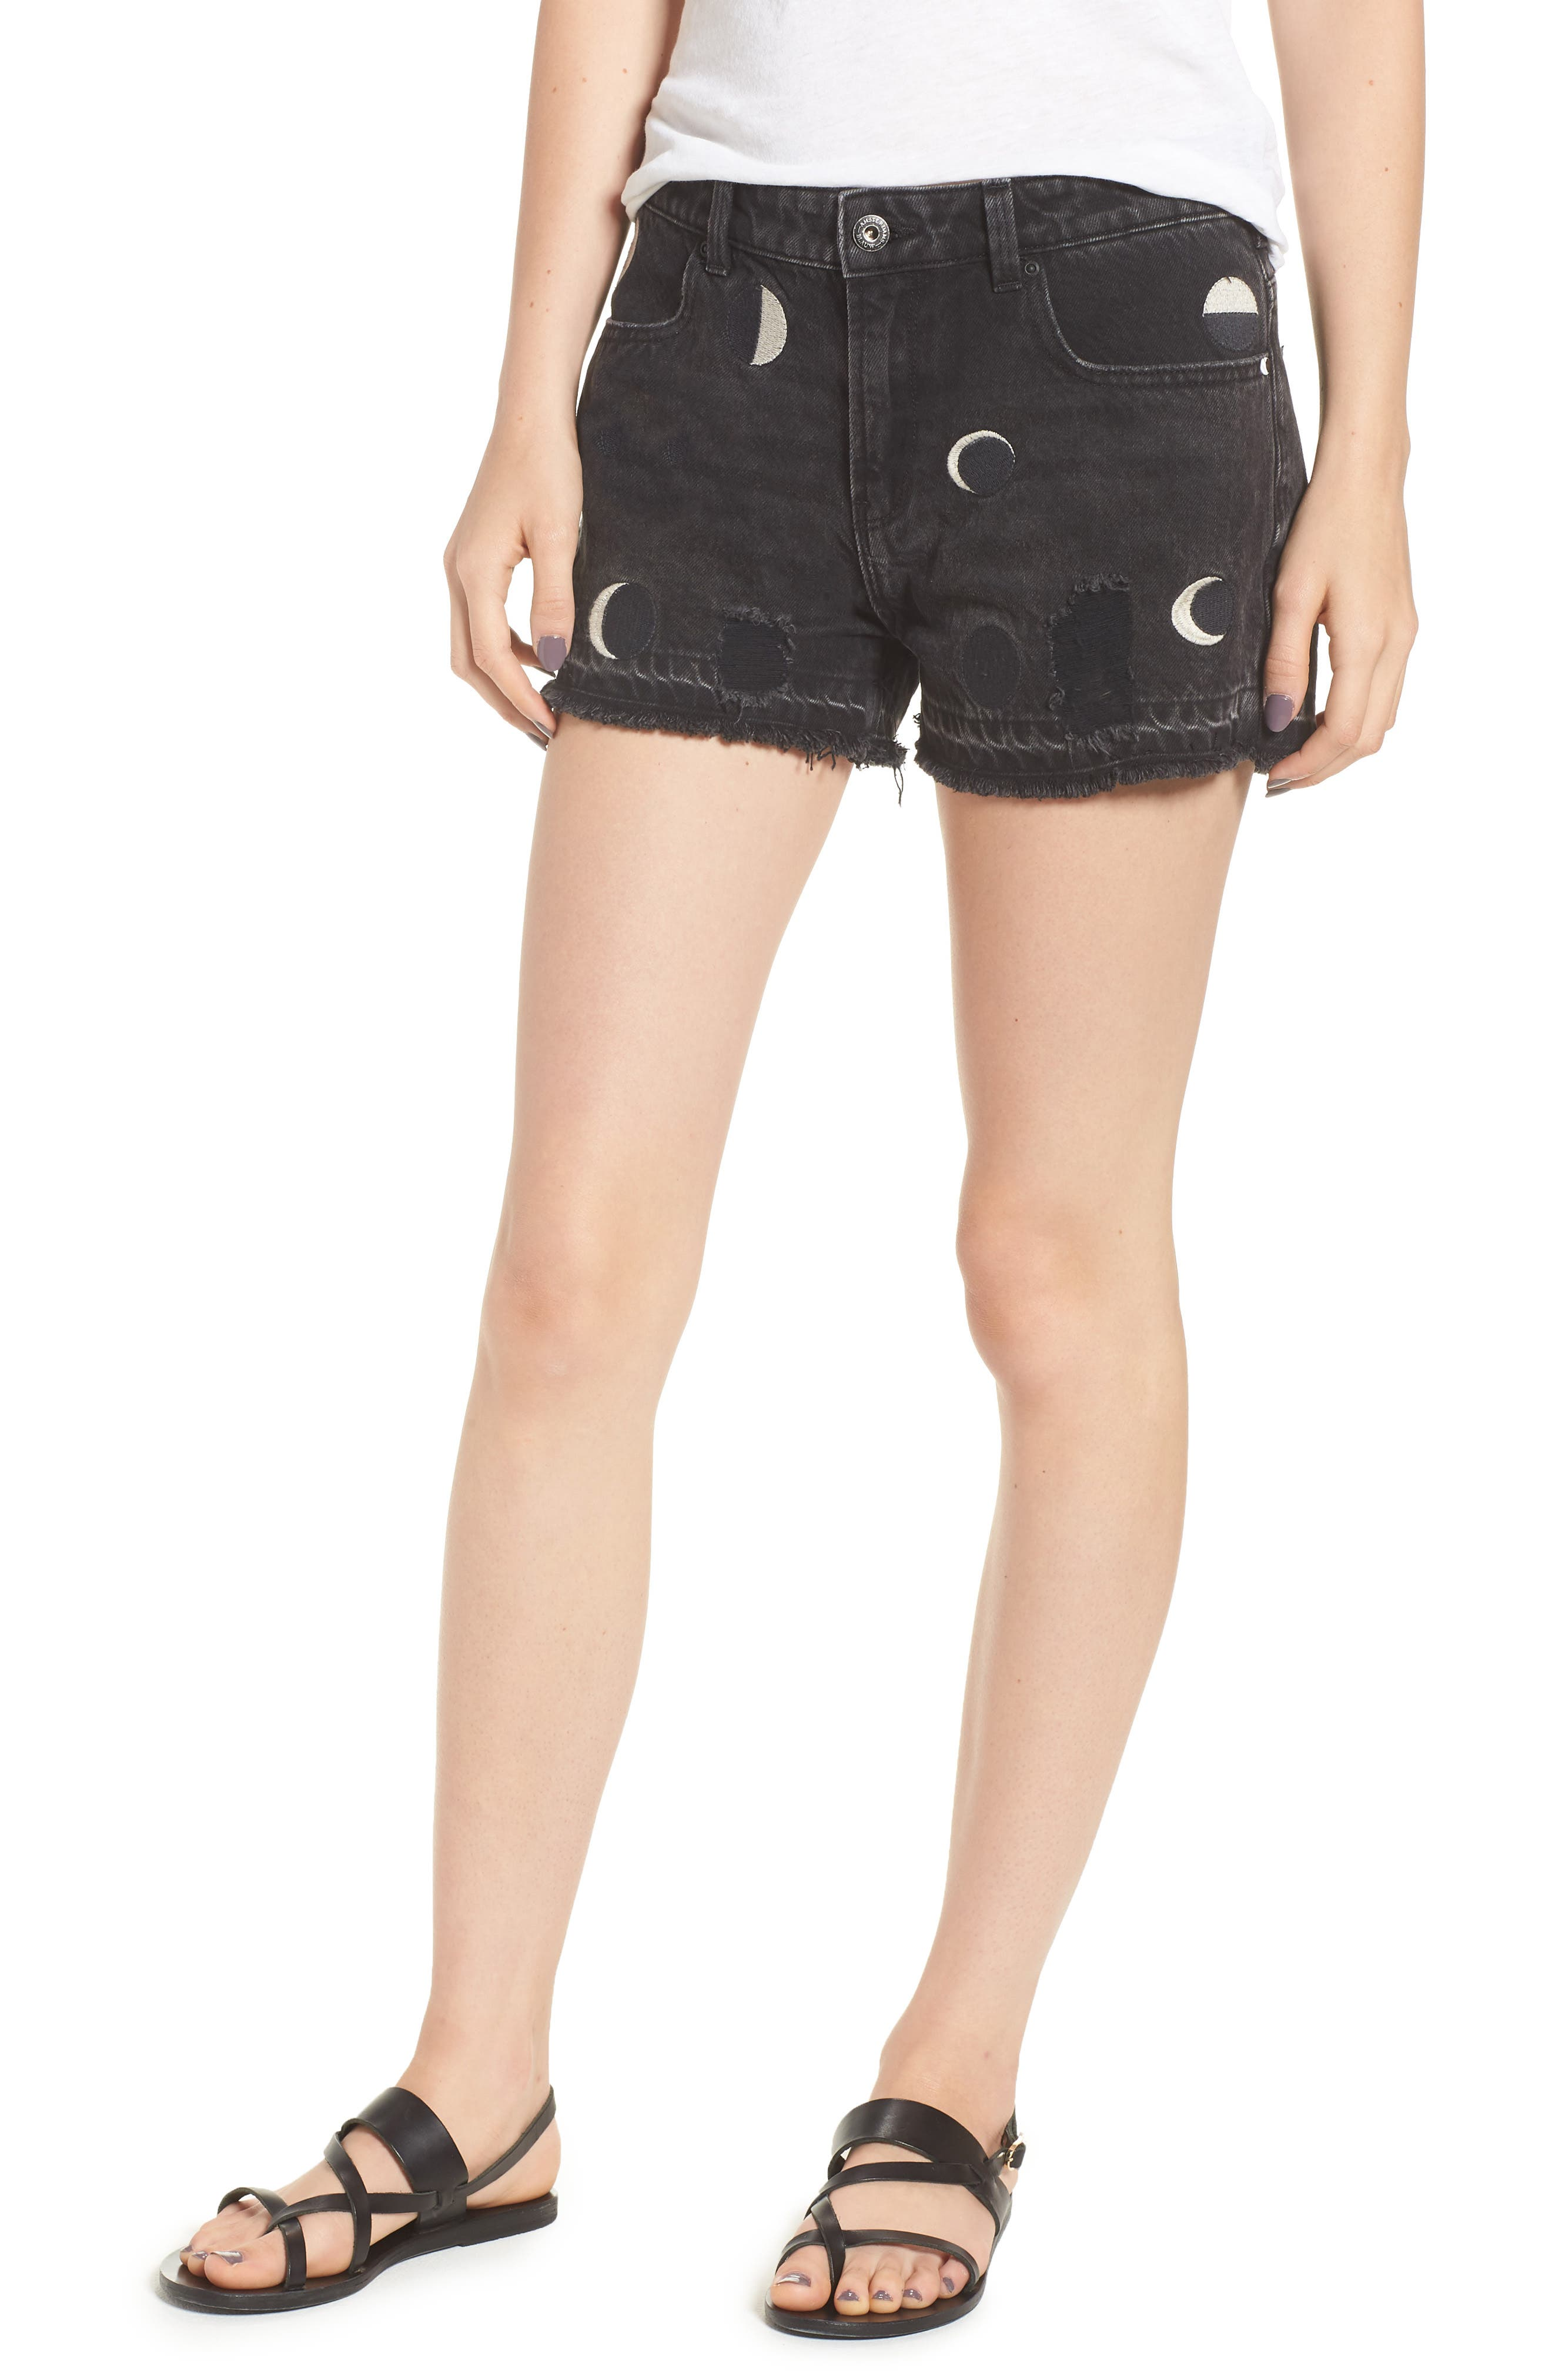 Seasonal Festival Embroidered Denim Shorts,                             Main thumbnail 1, color,                             721